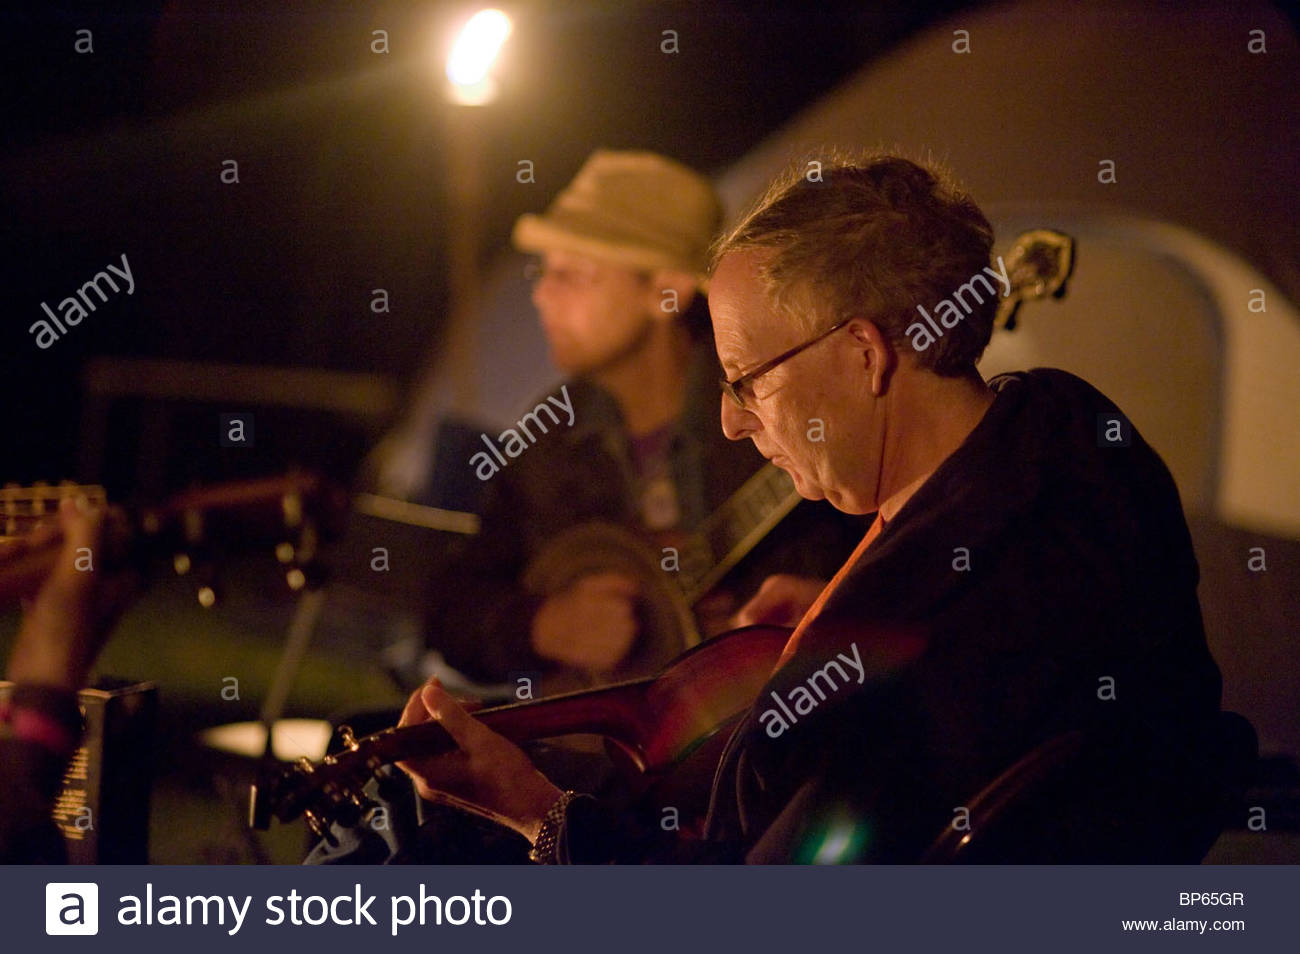 Appalachian String Band music festival, Clifftop, West Virginia - Stock Image